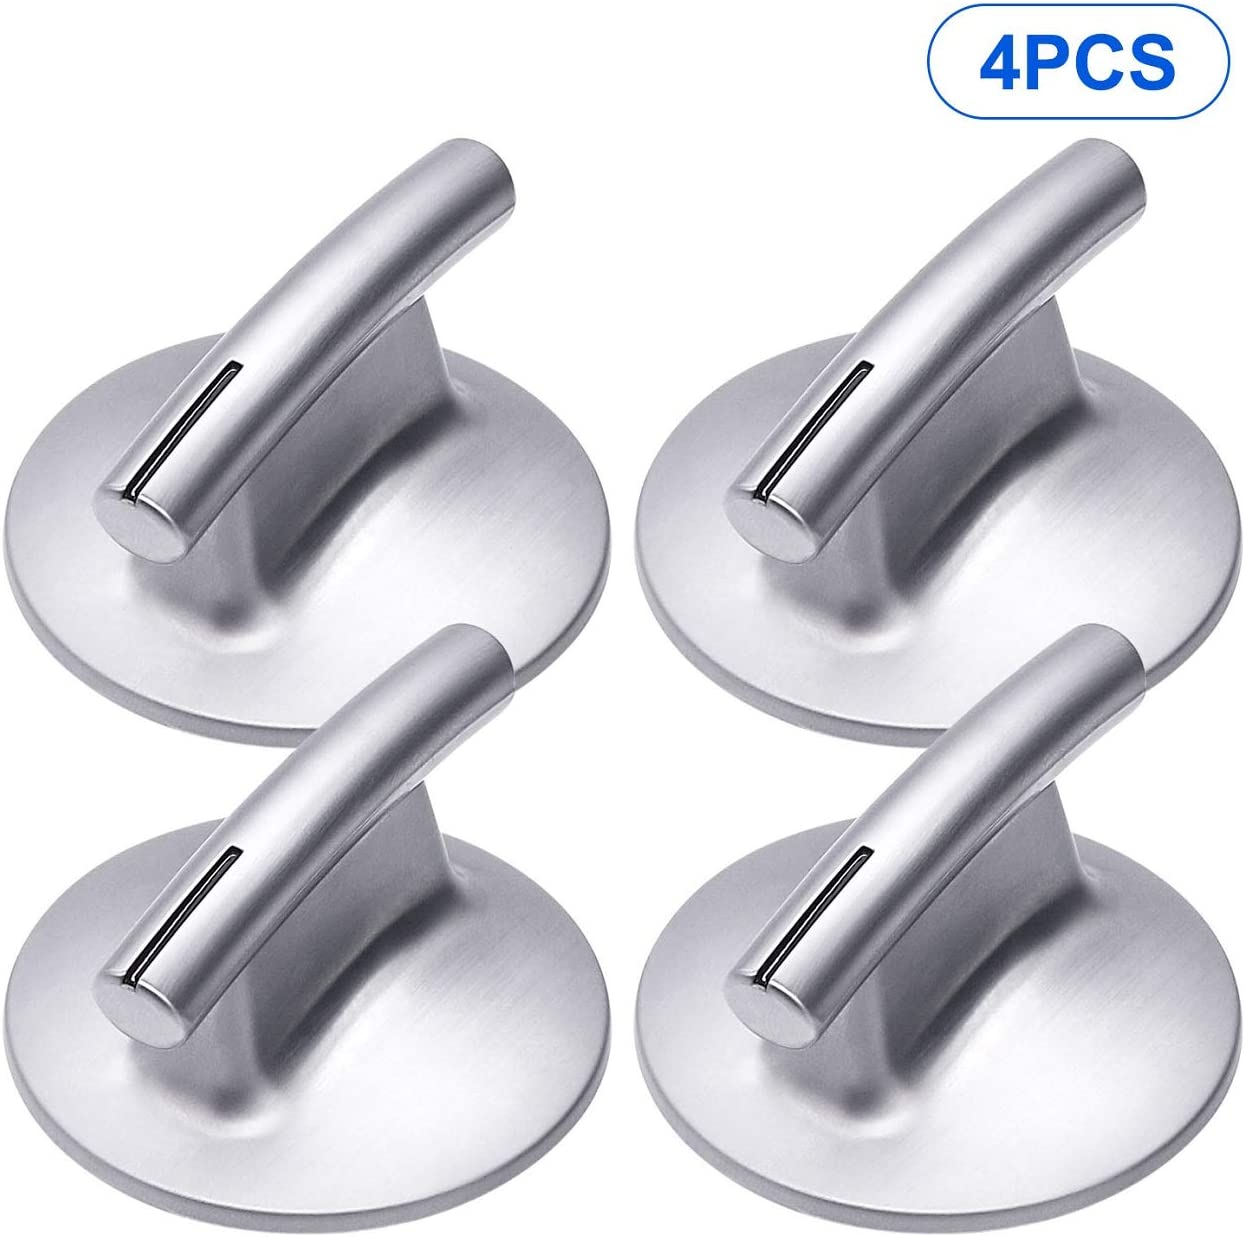 [Upgraded] 74010839 Cooktop Burner Knob Compatible with Whirlpool Range,4 Pack Replacement Part for 7737P372-60, PS11744413, WP74010839VP